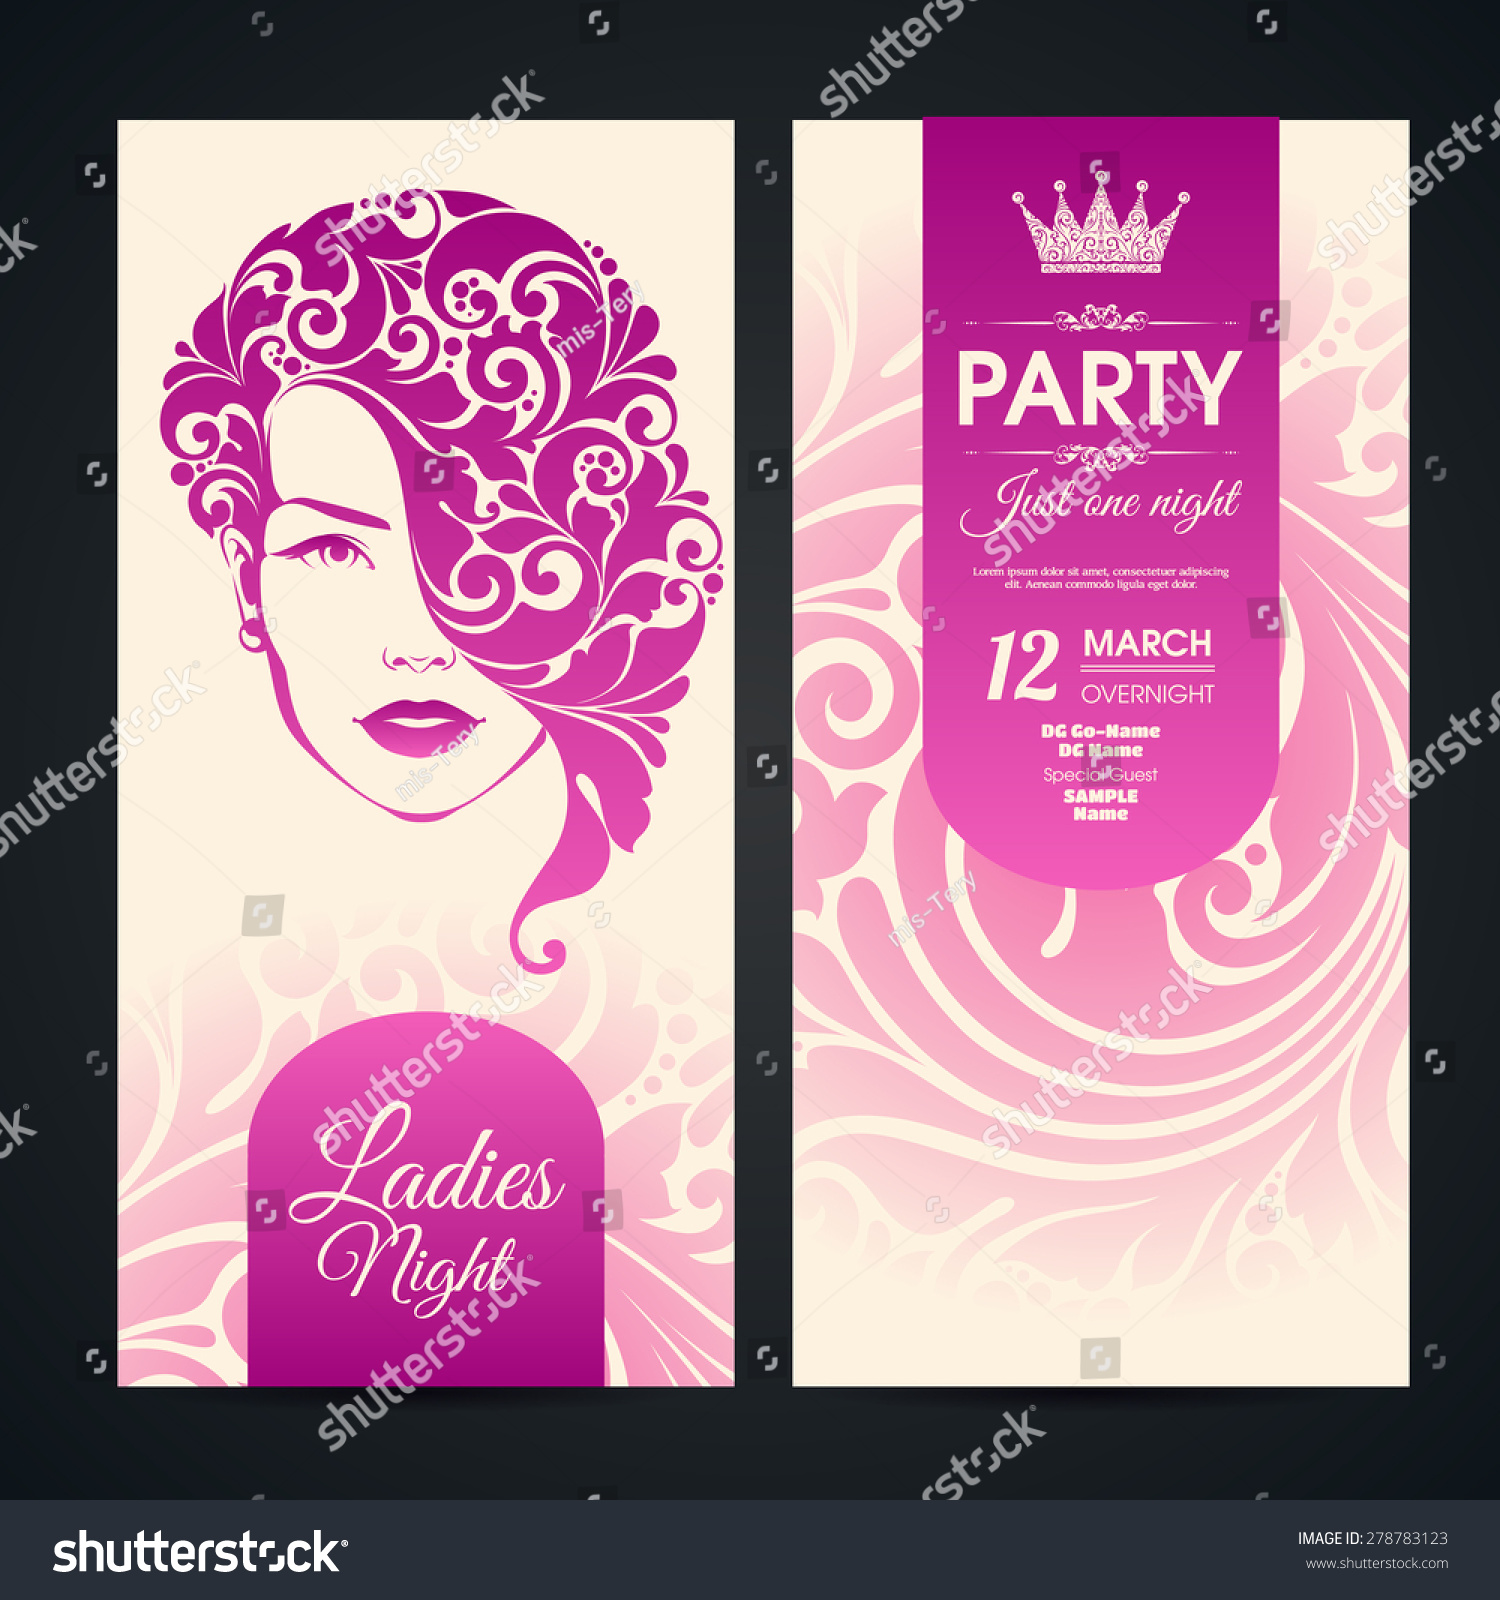 party invitation banners design ornate girl stock vector royalty